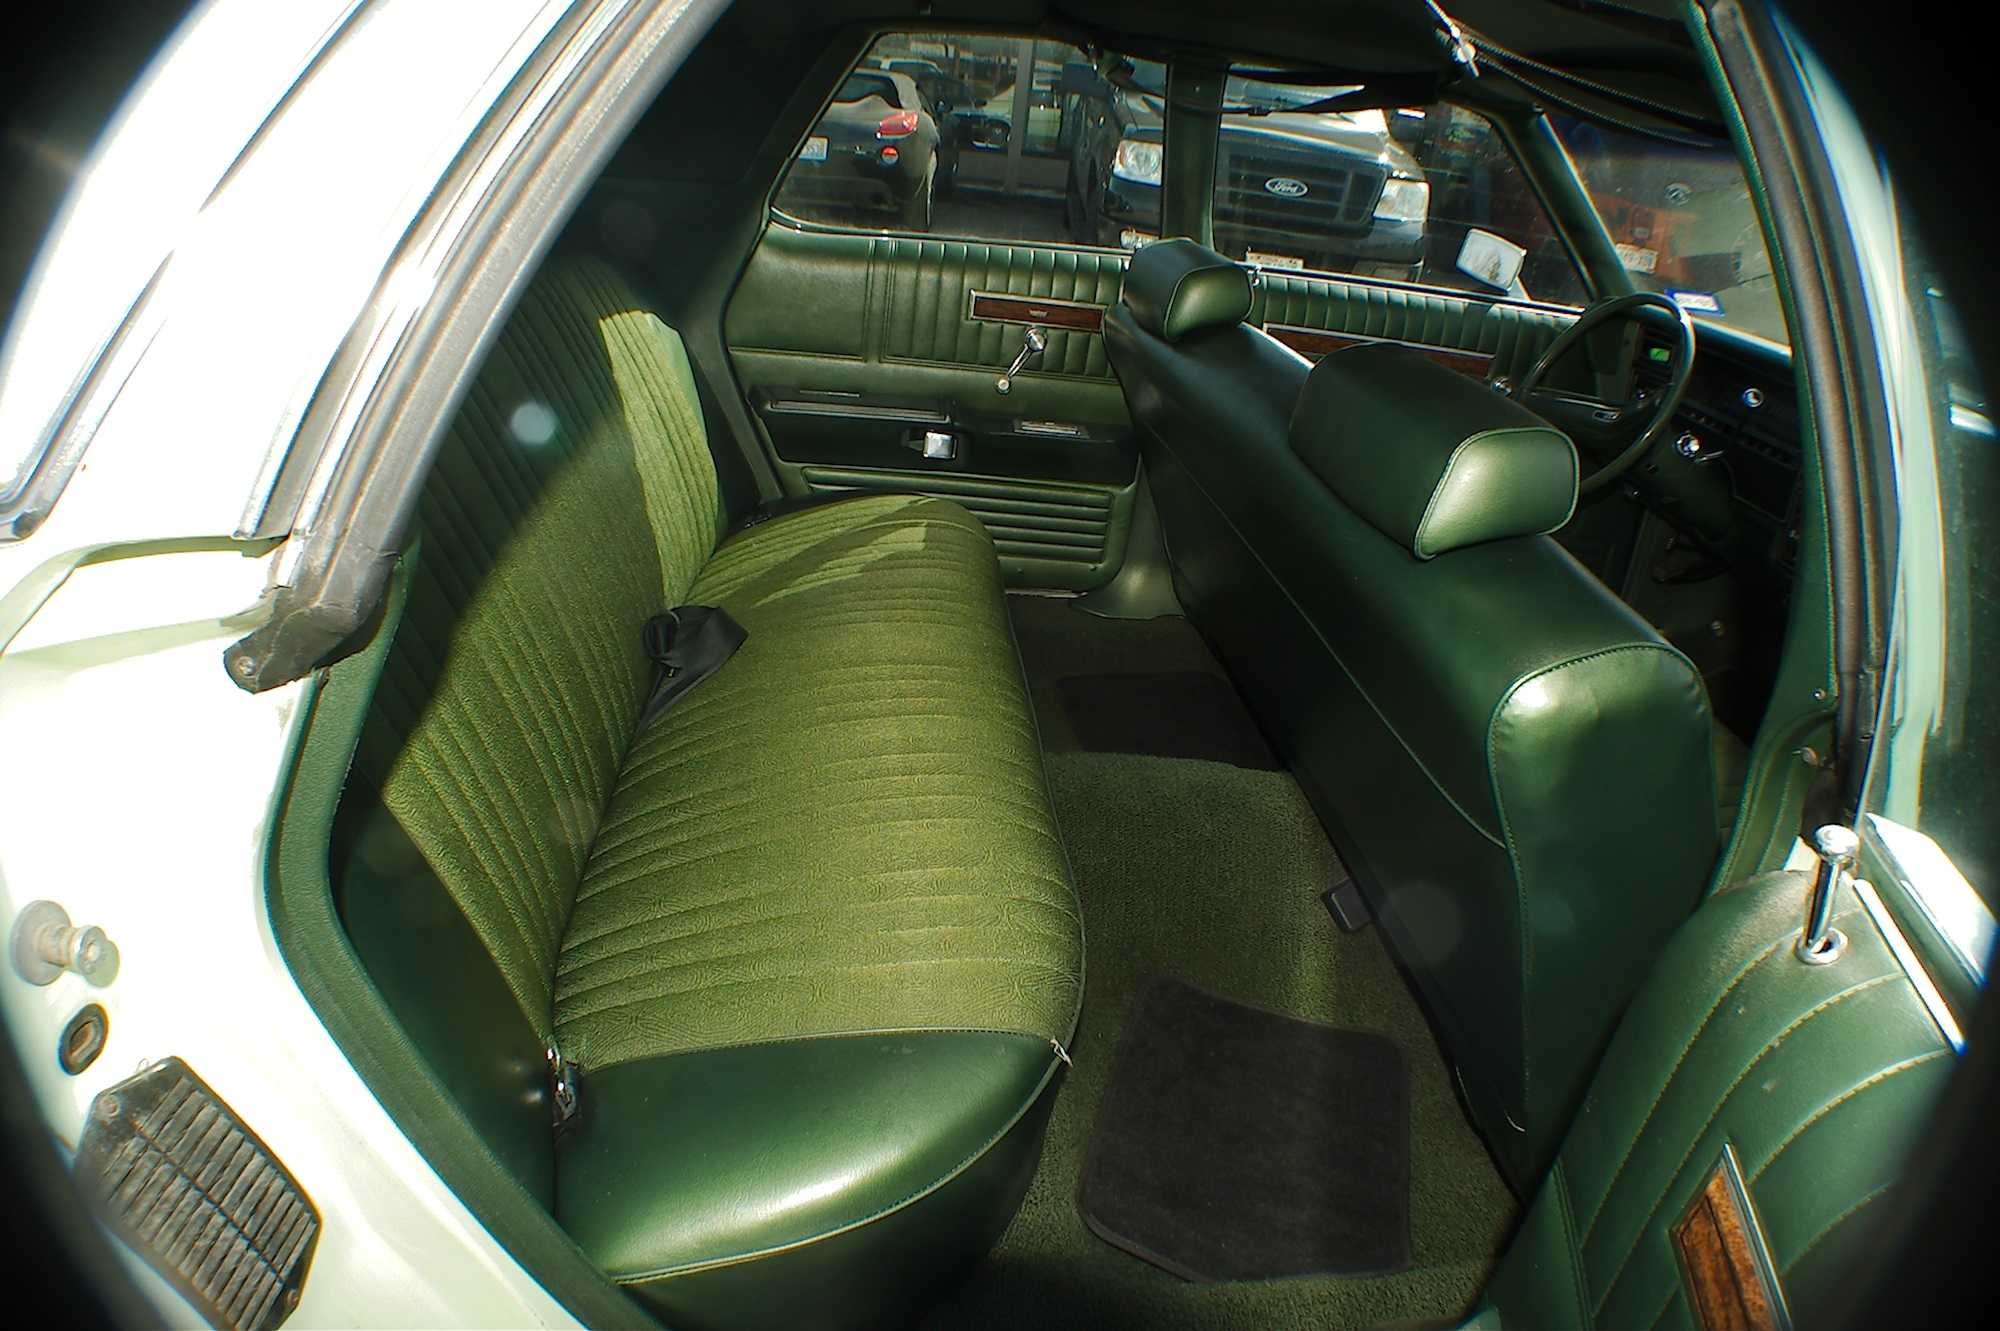 1973 Ford Galaxie 500 Green Sedan Used Car Sale Libertyville Lincolnshire Lindenhurst